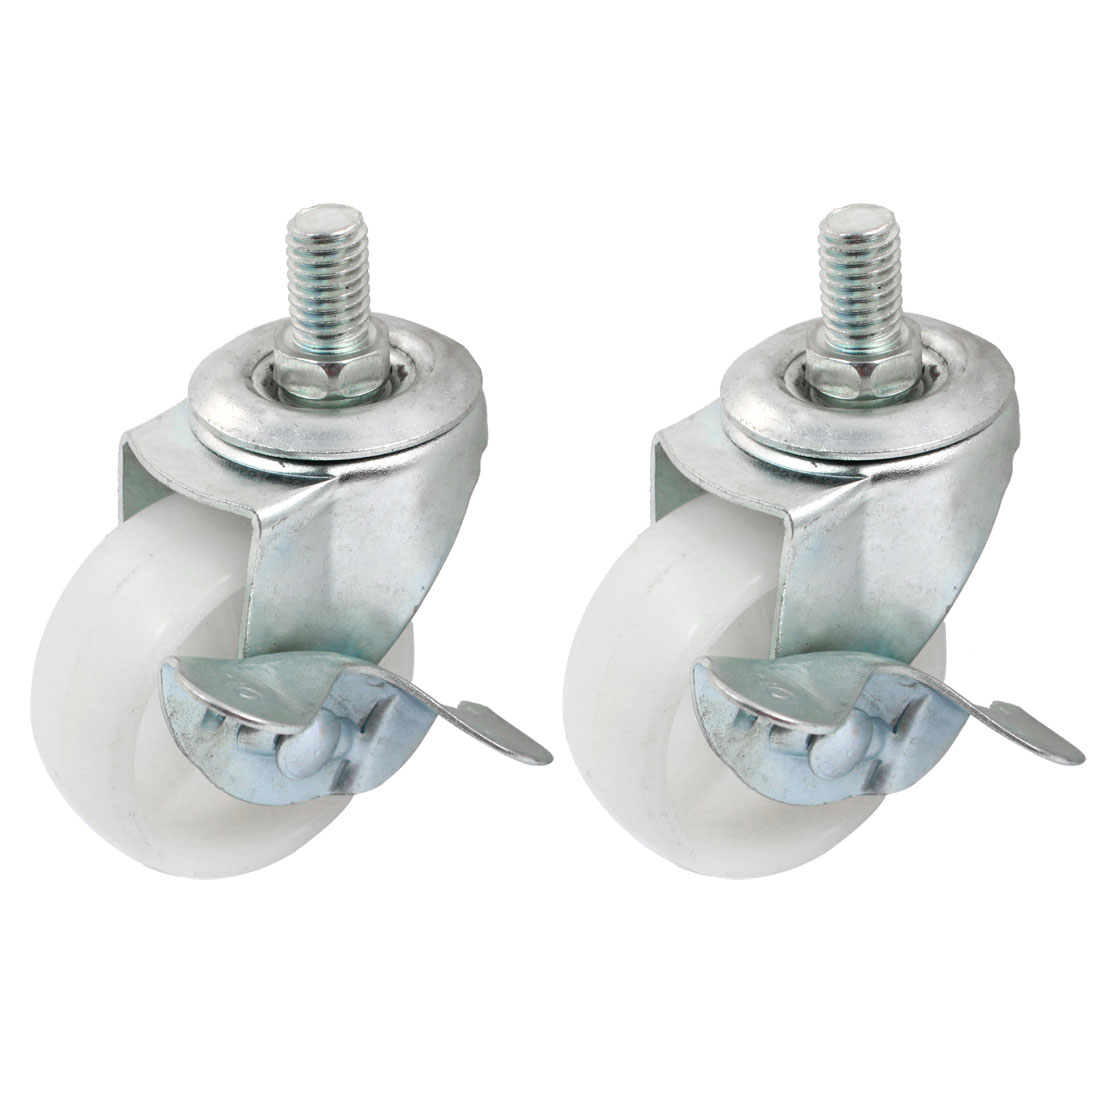 "Shopping Cart 10mm Thread Dia 2"" Rotary Round Wheel Swivel Brake Caster 2pcs"